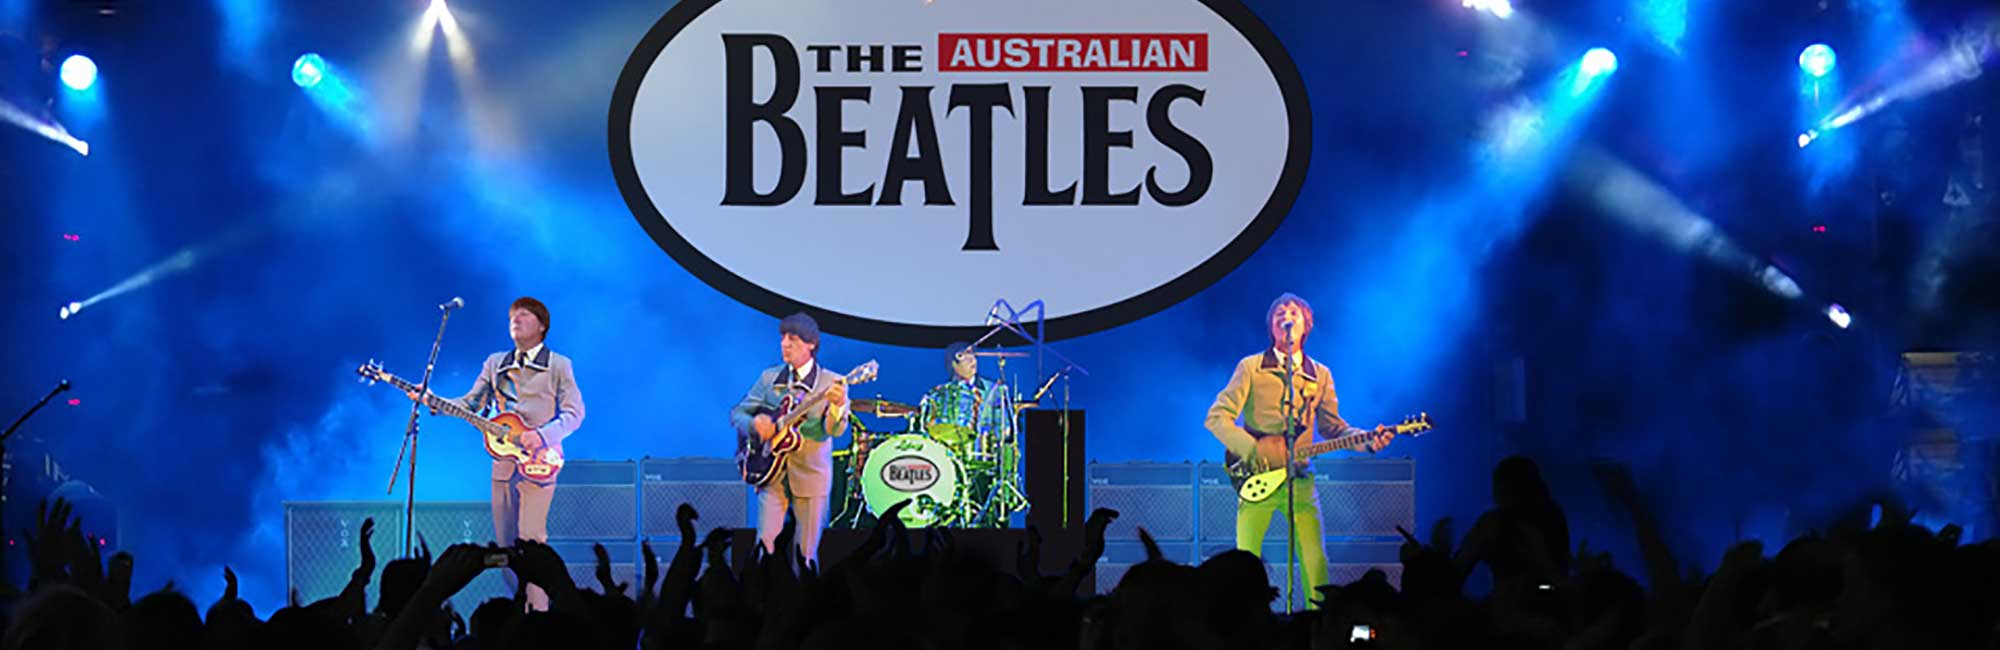 Beatles Tribute Show Band Perth Australia